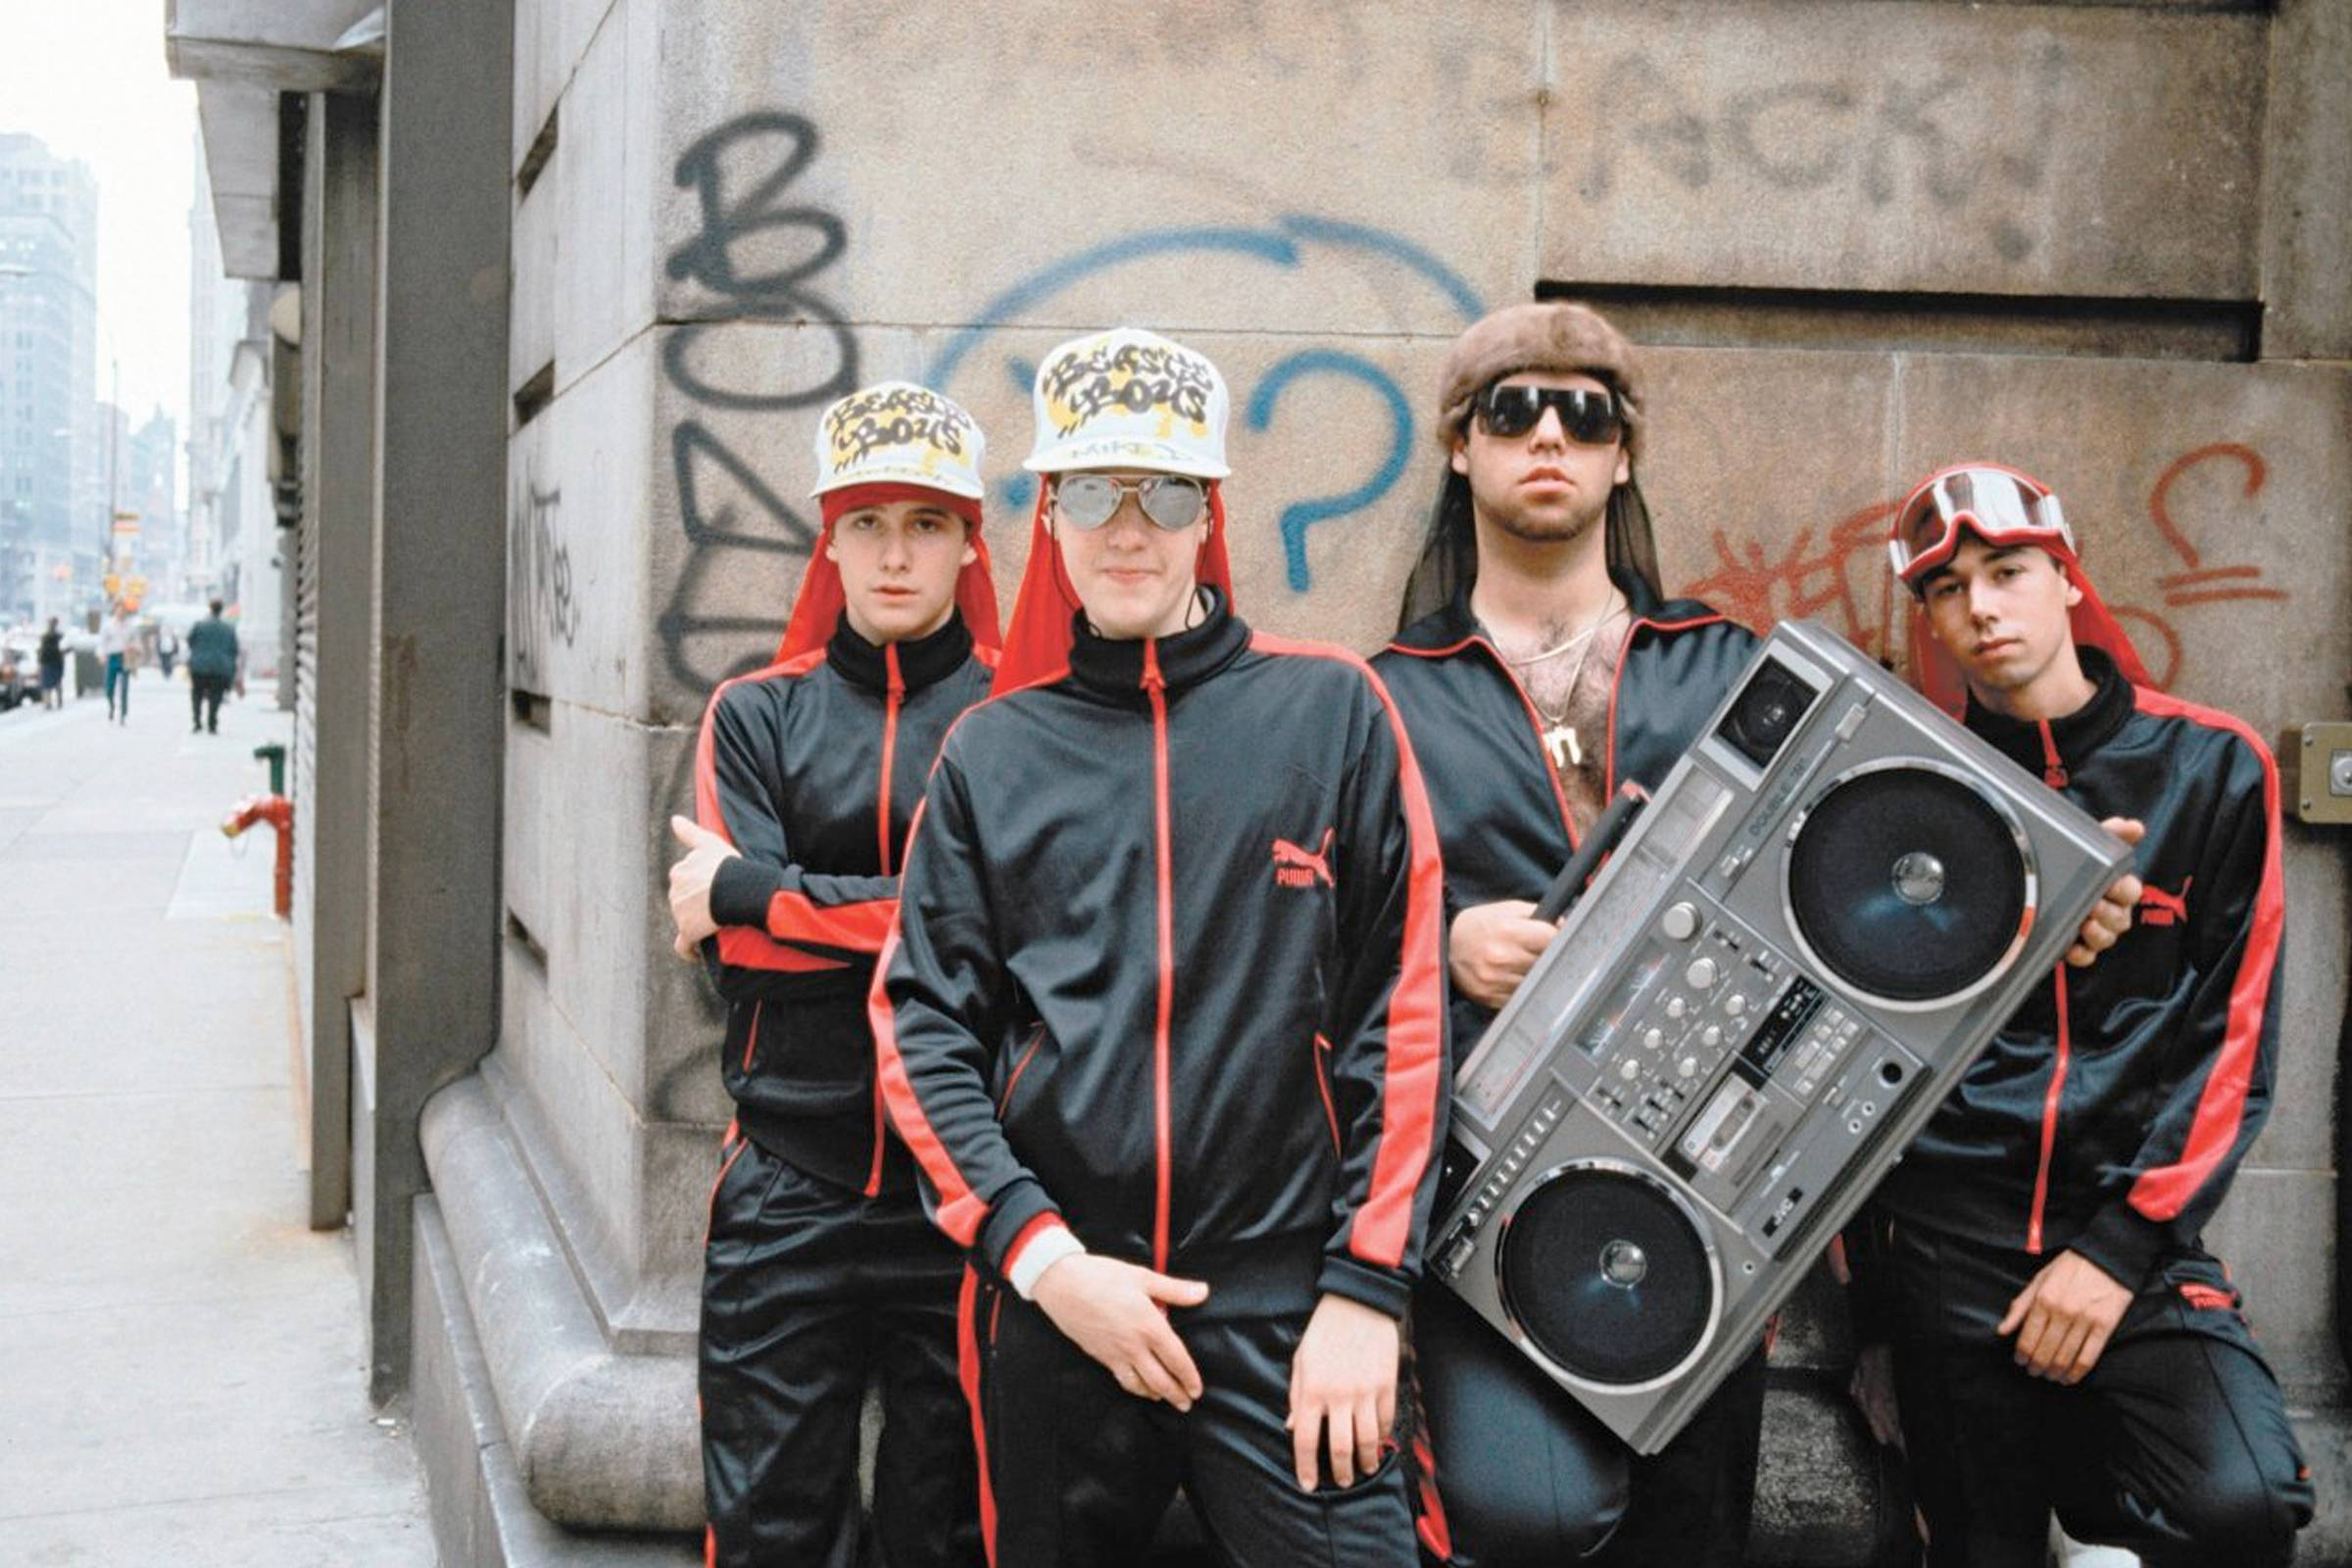 The Beastie Boys in Puma tracksuits with Rick Rubin (holding boombox)